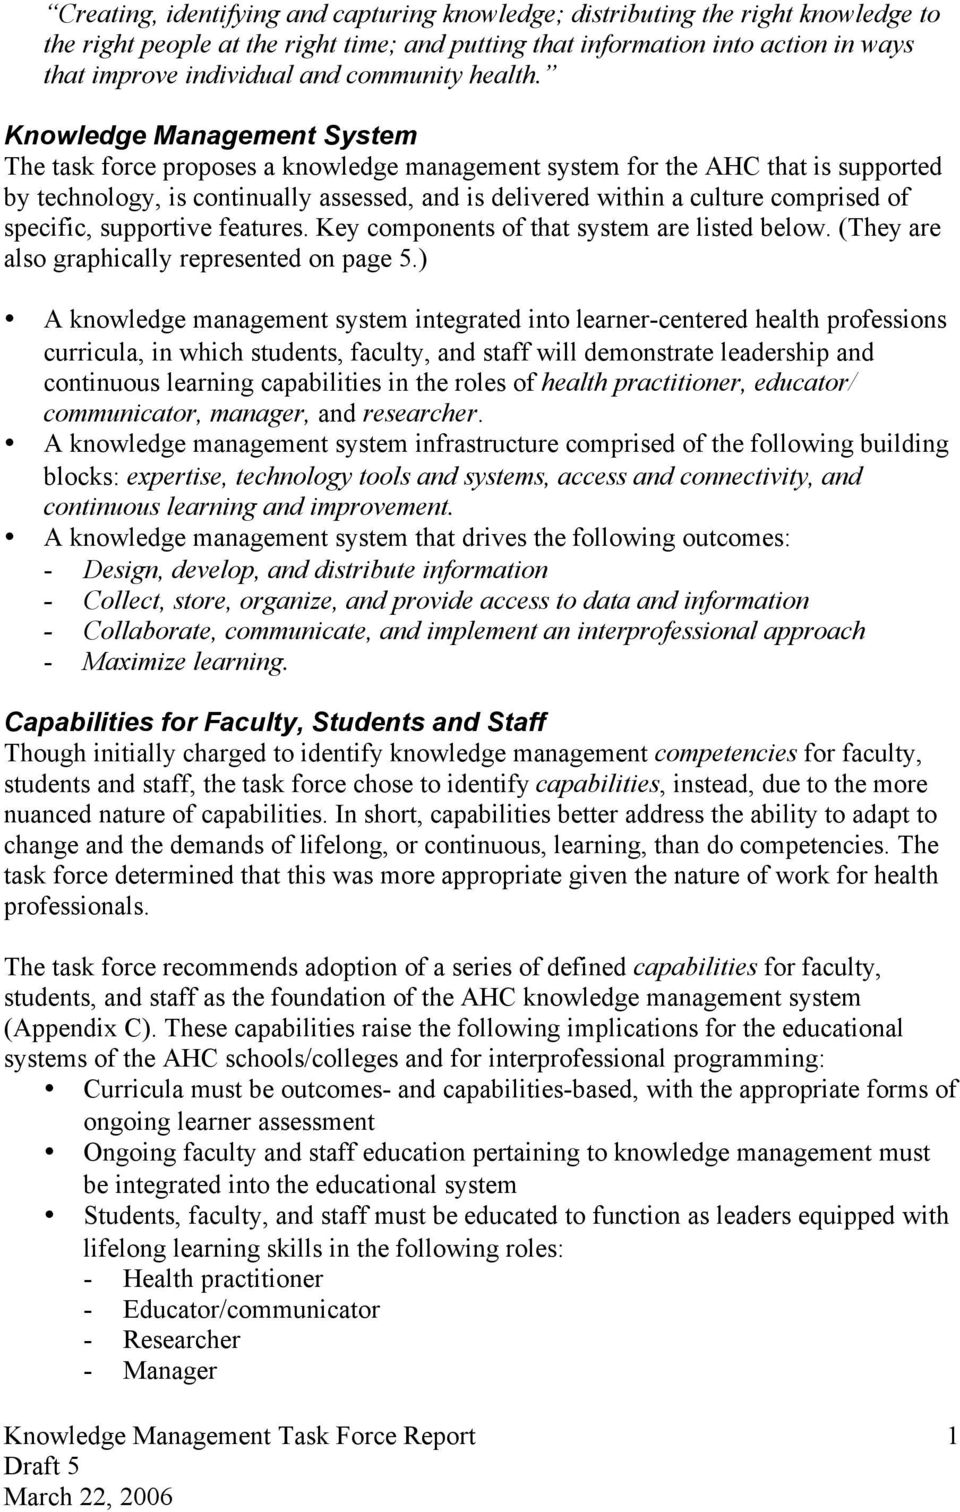 Knowledge Management System The task force proposes a knowledge management system for the AHC that is supported by technology, is continually assessed, and is delivered within a culture comprised of